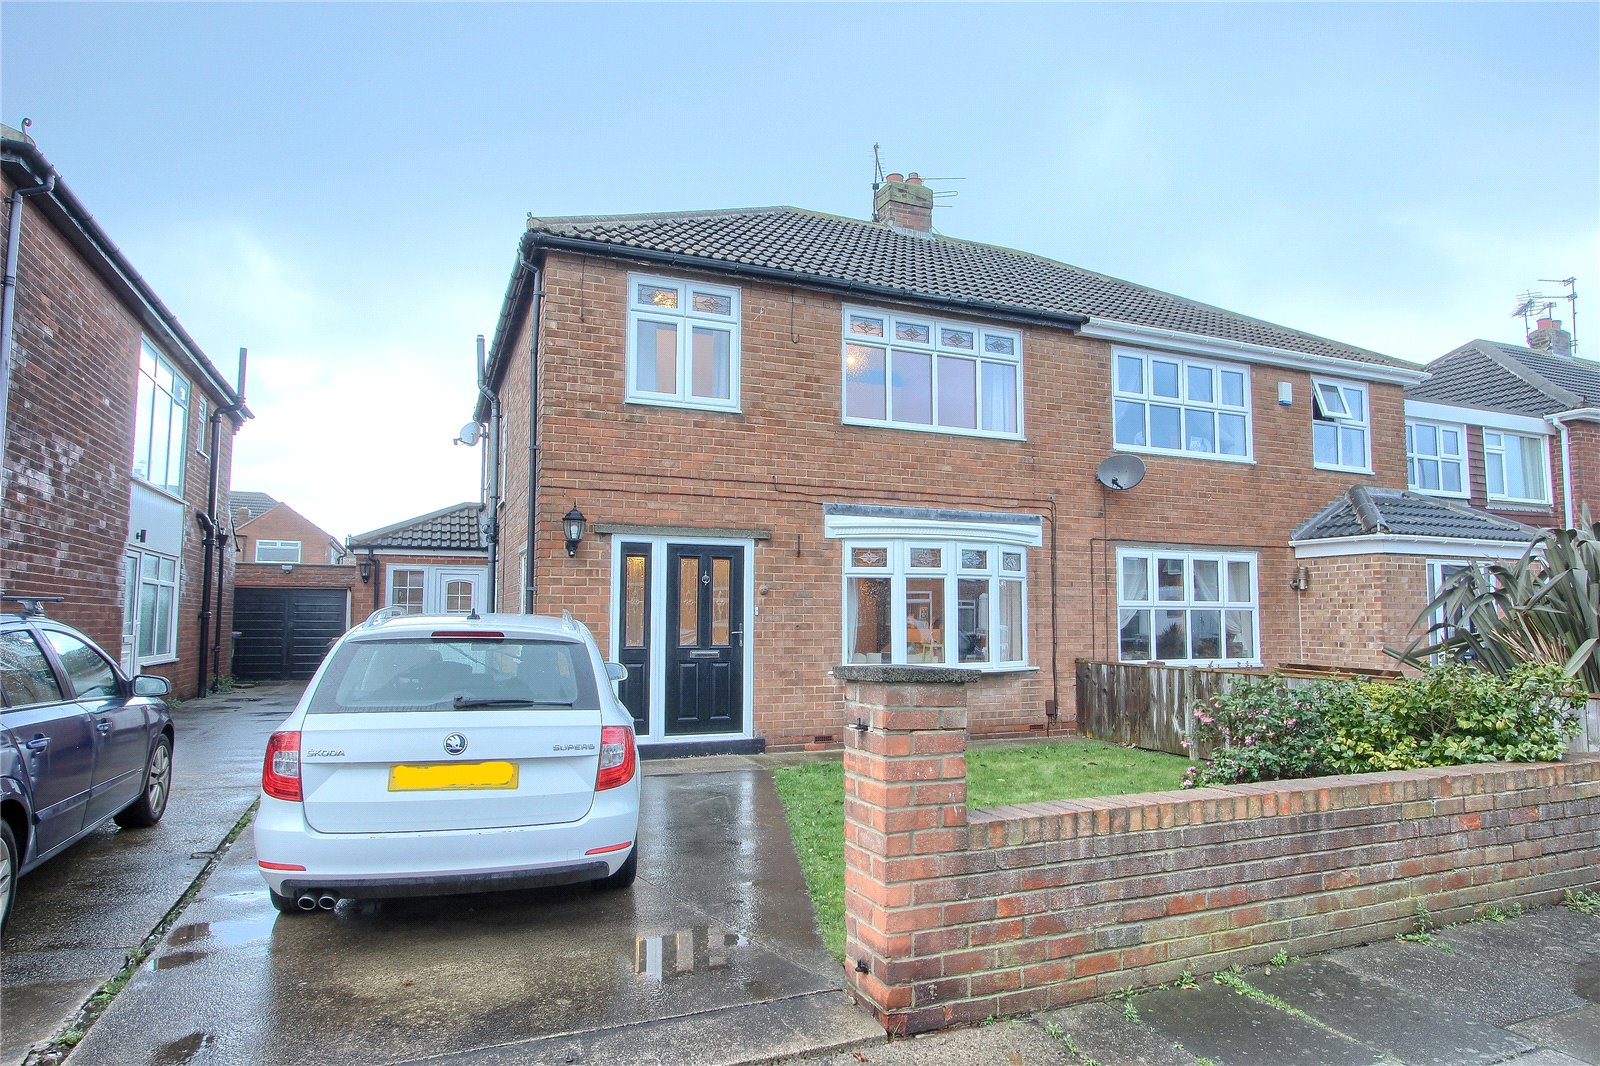 3 bed house for sale in Ascot Road, Redcar  - Property Image 1